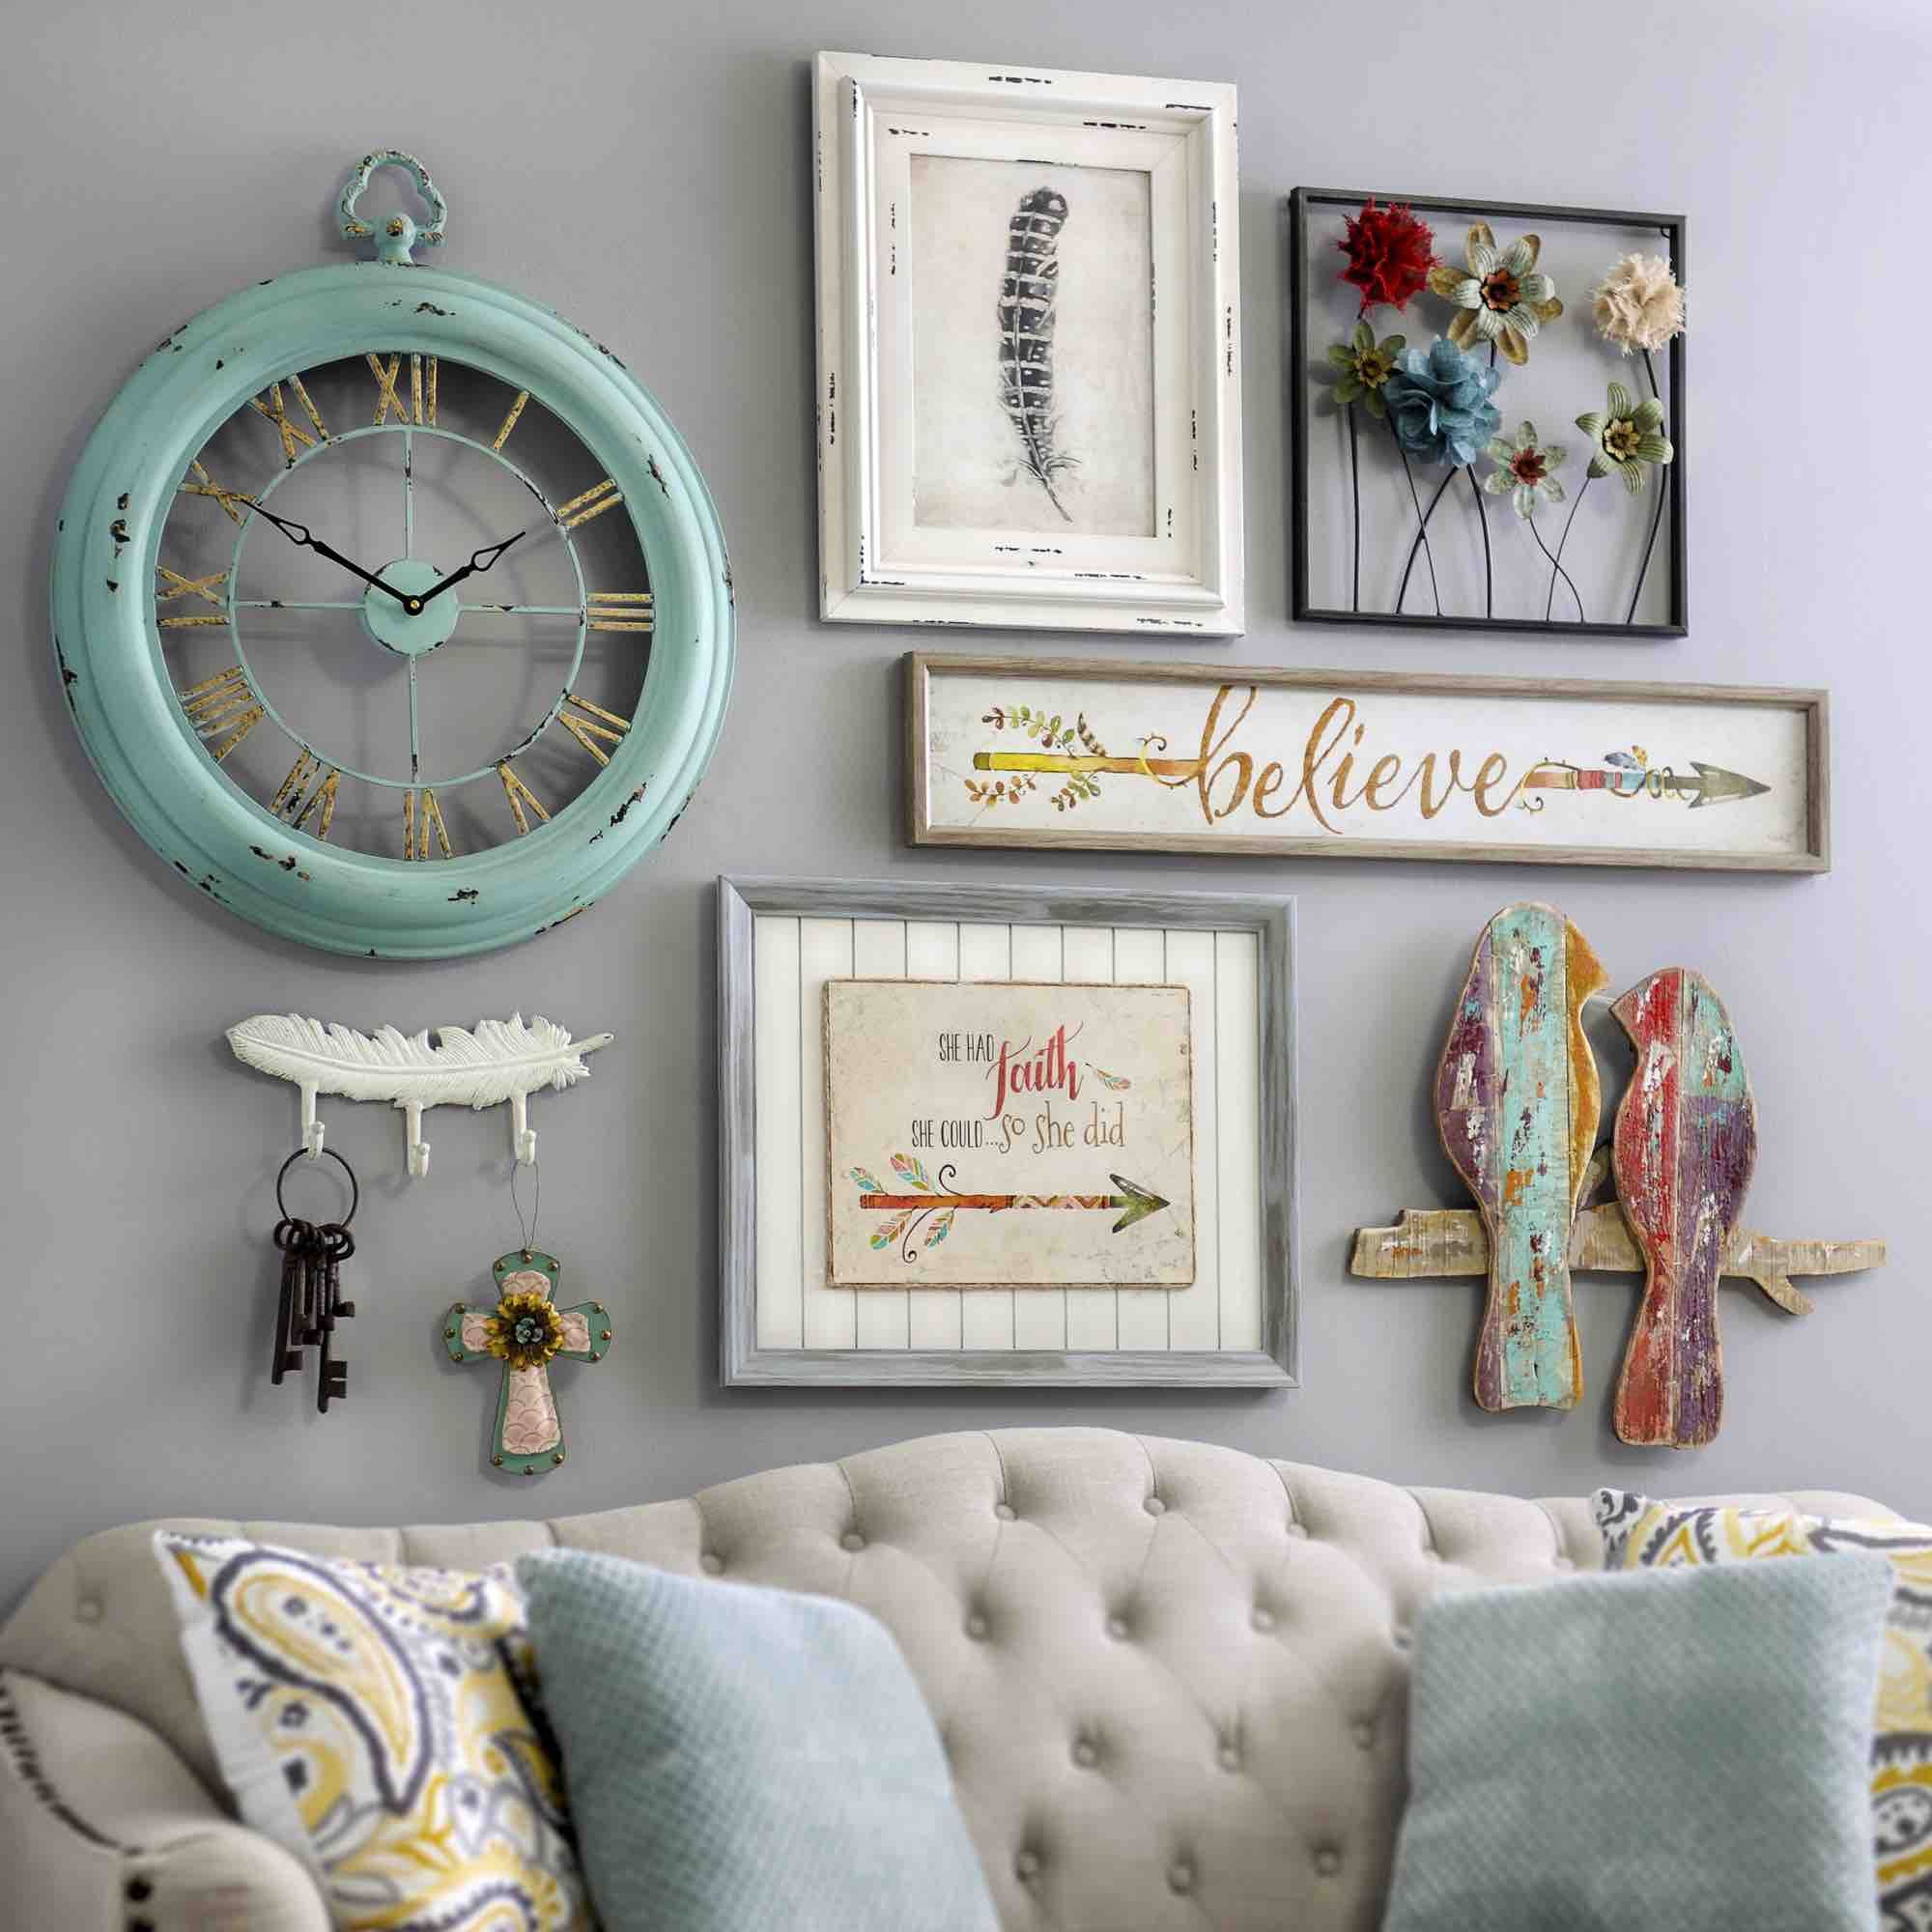 Style Vintage Deco Bring A Shabby Chic Charm To Your Home By Adding Pieces Of